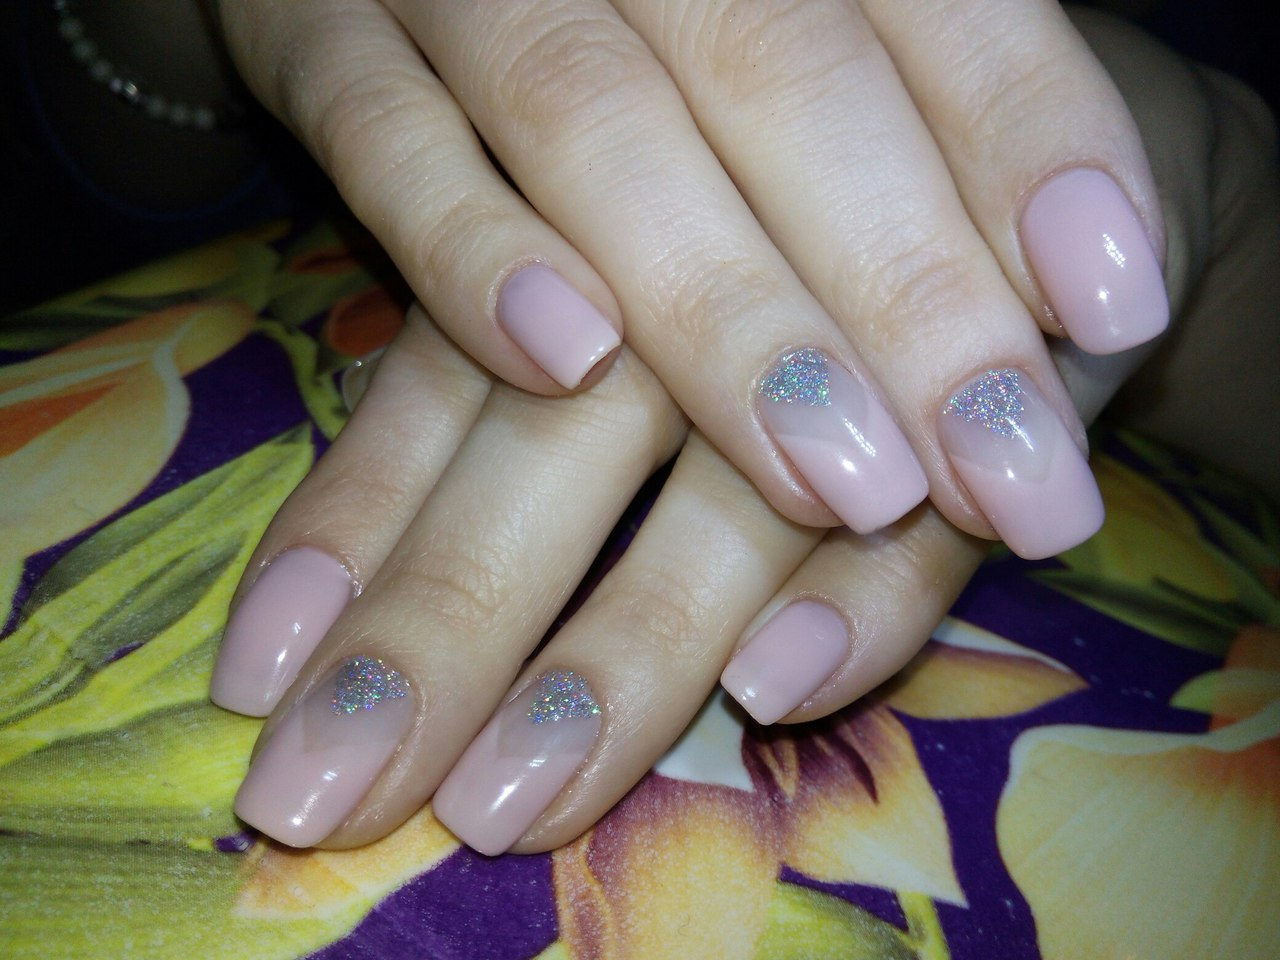 Beige nails with glitter